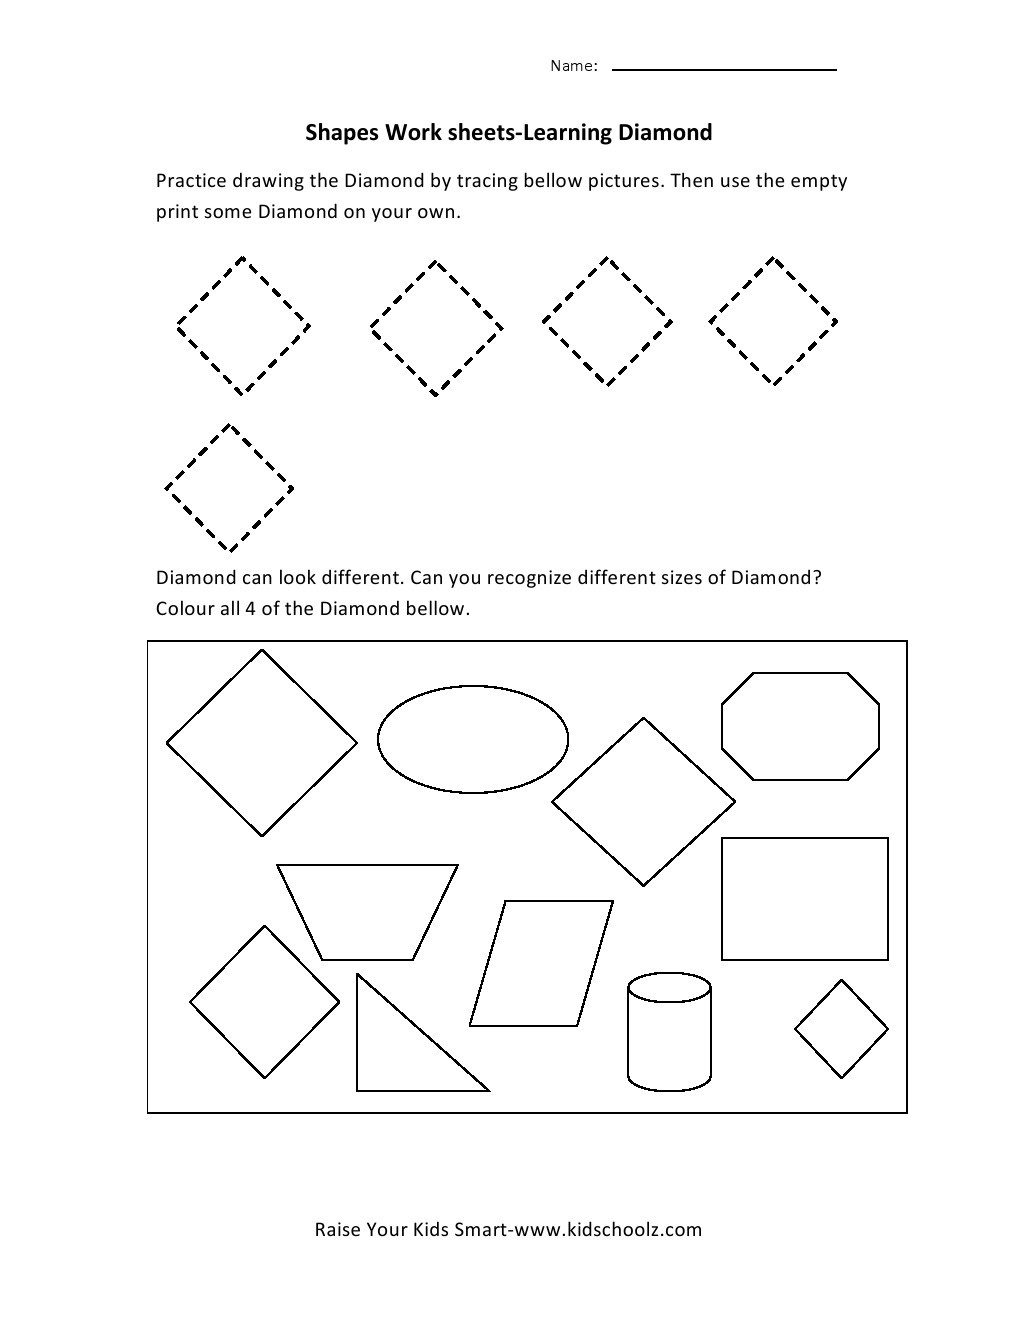 Preschool Diamond Shape Worksheets Learning Shapes Worksheets Diamond Kidschoolz